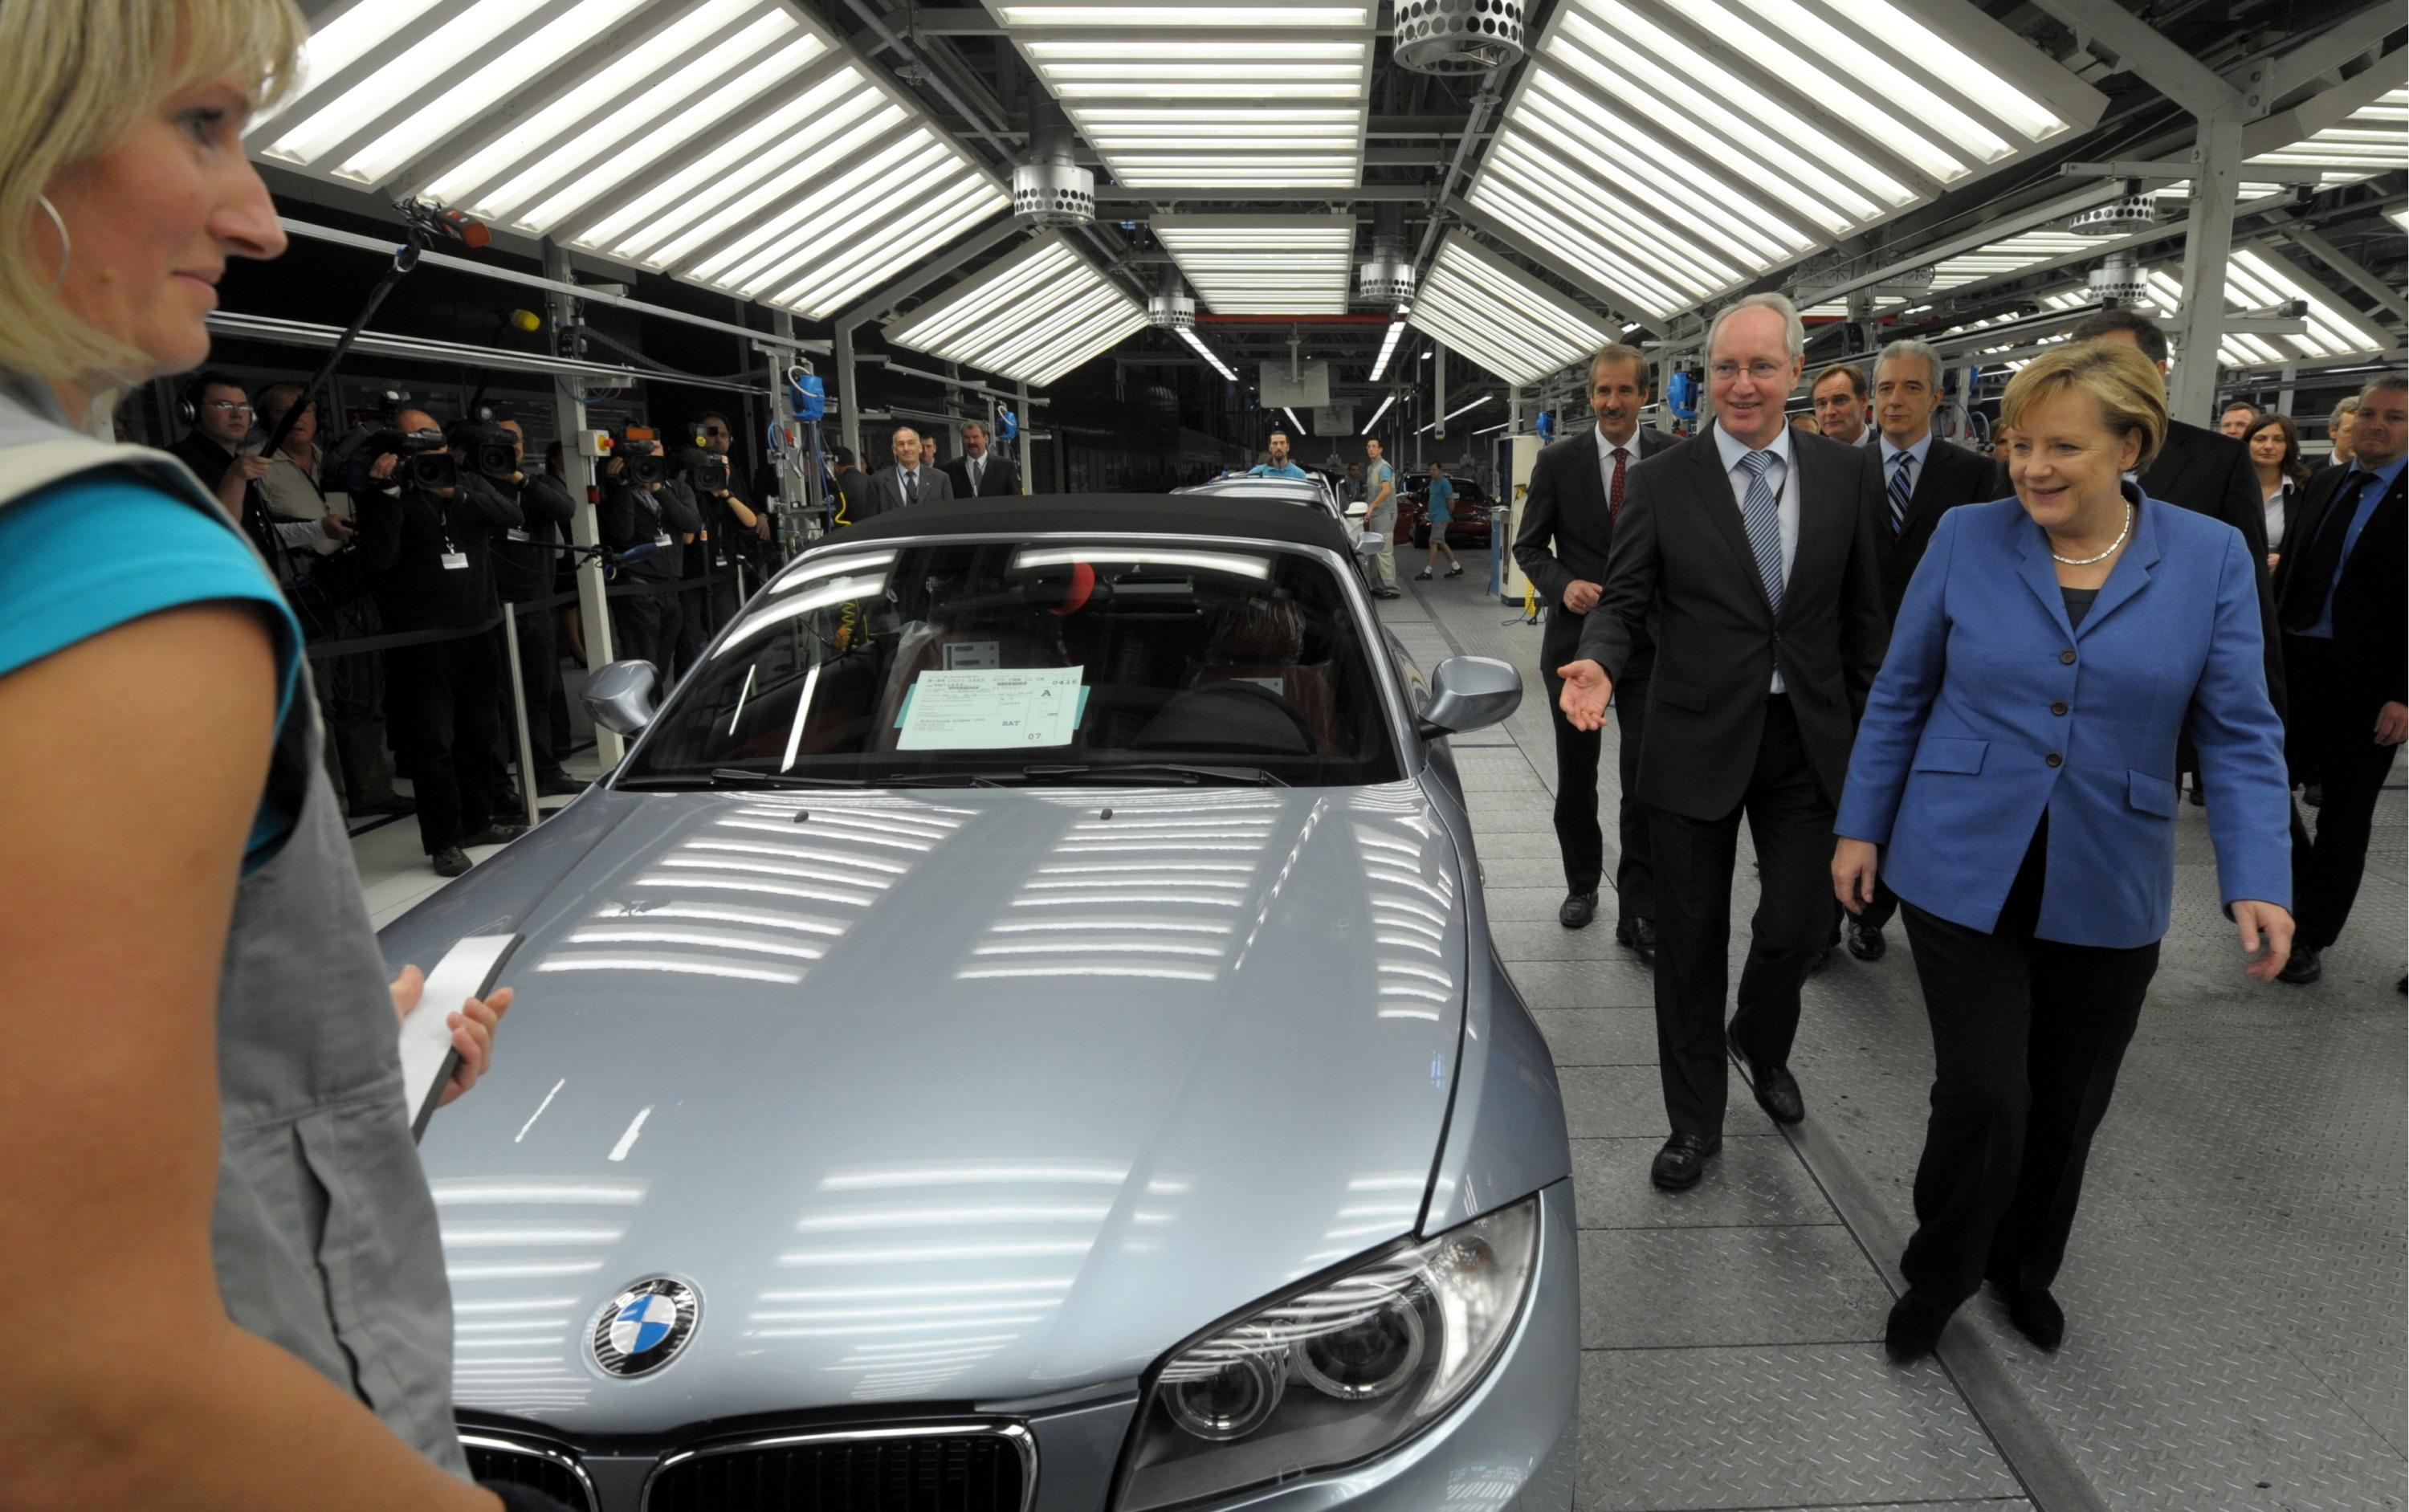 Merkel Party Took Bmw Money Before Emissions Call